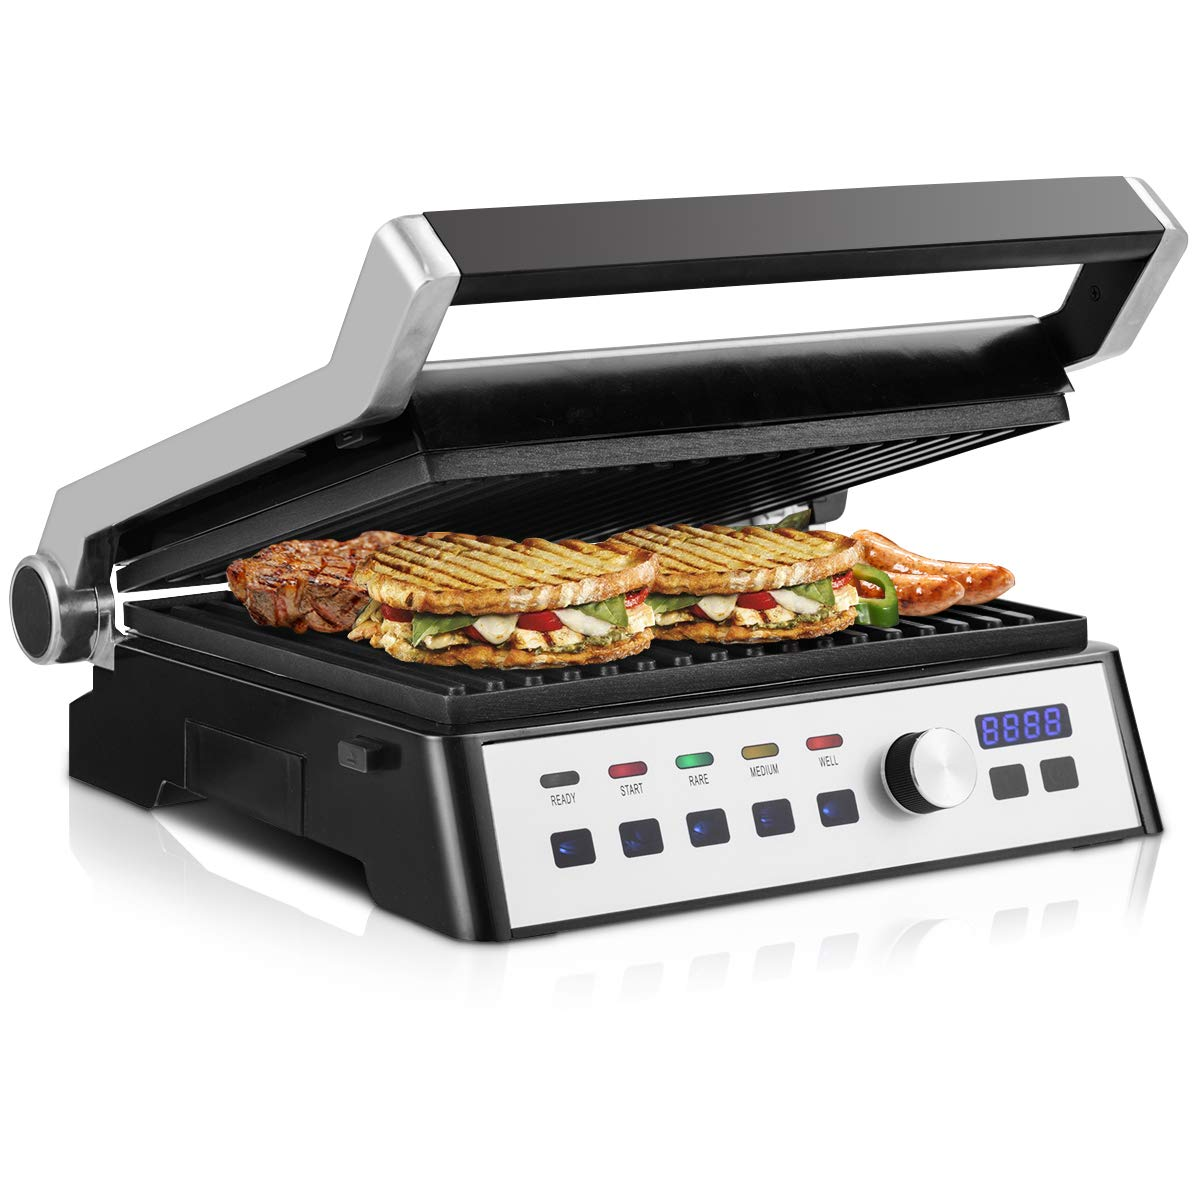 COSTWAY 1500W Smokeless Electric Grill Indoor Grill with Adjustable Temperature and Positions, Non-stick Cooking Surface, Panini Press Sandwich Maker Grill Griddle with Removable Plate & LCD Touch Display by COSTWAY